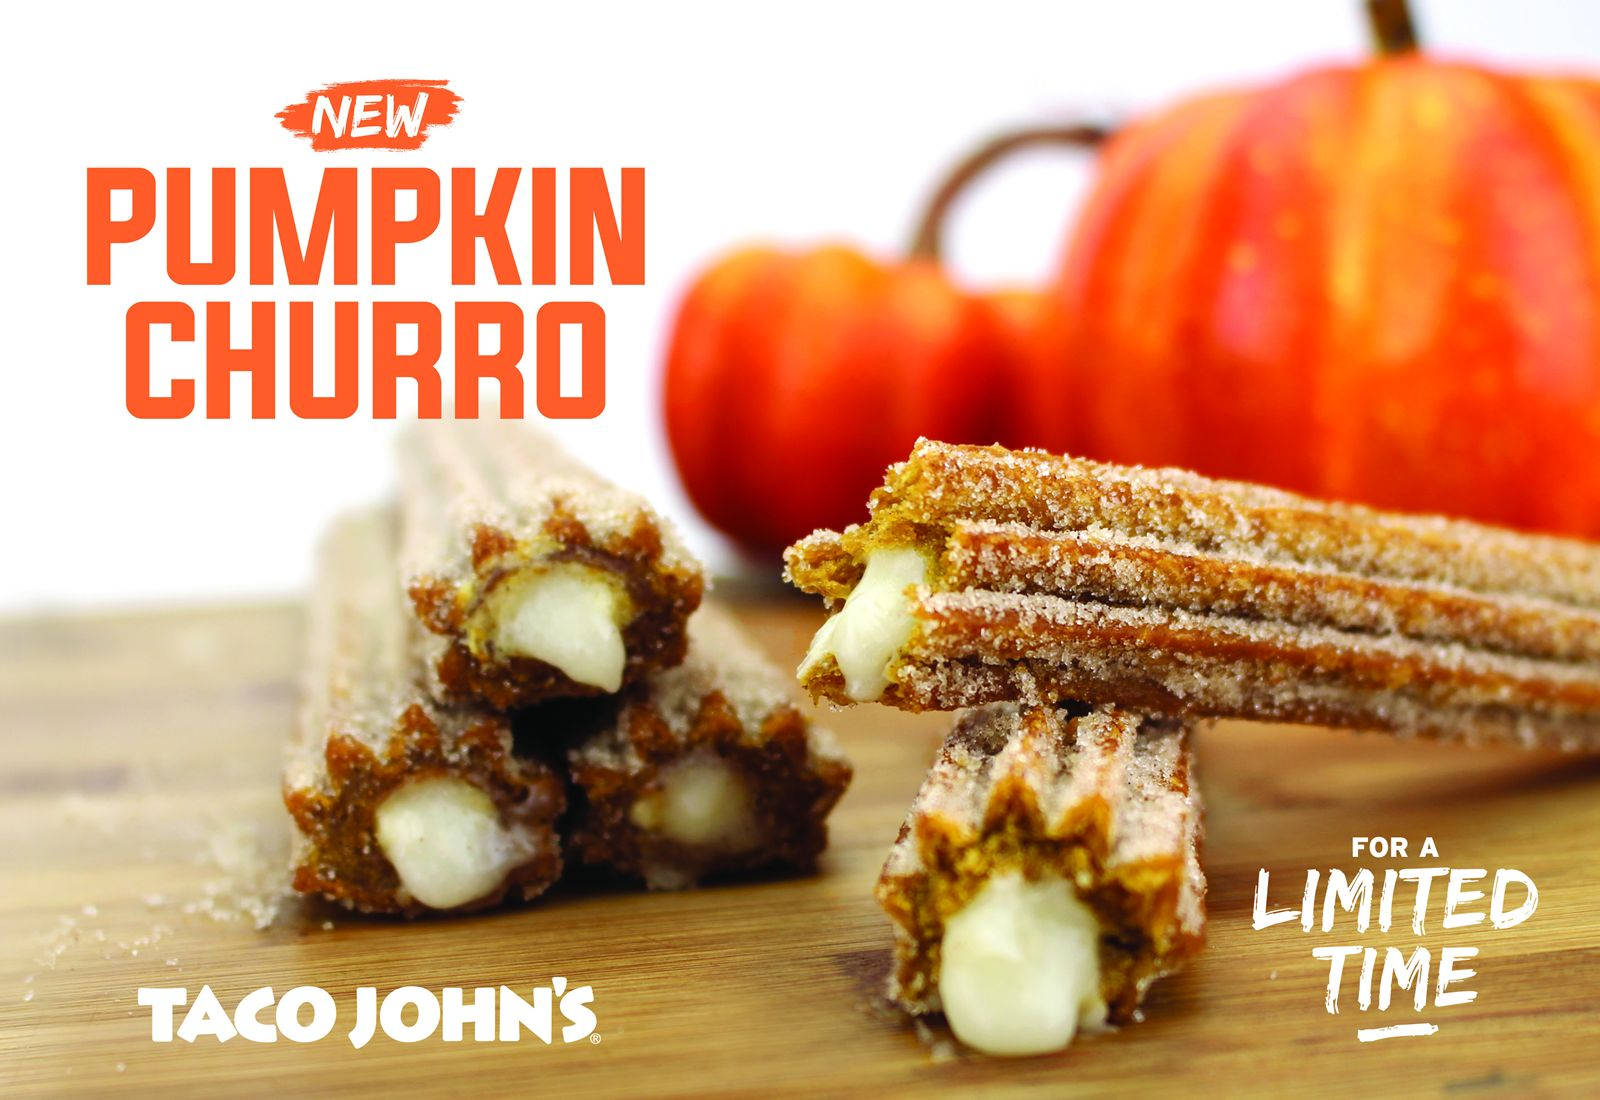 Pumpkin Churros Bring Taste of Autumn To Taco John's